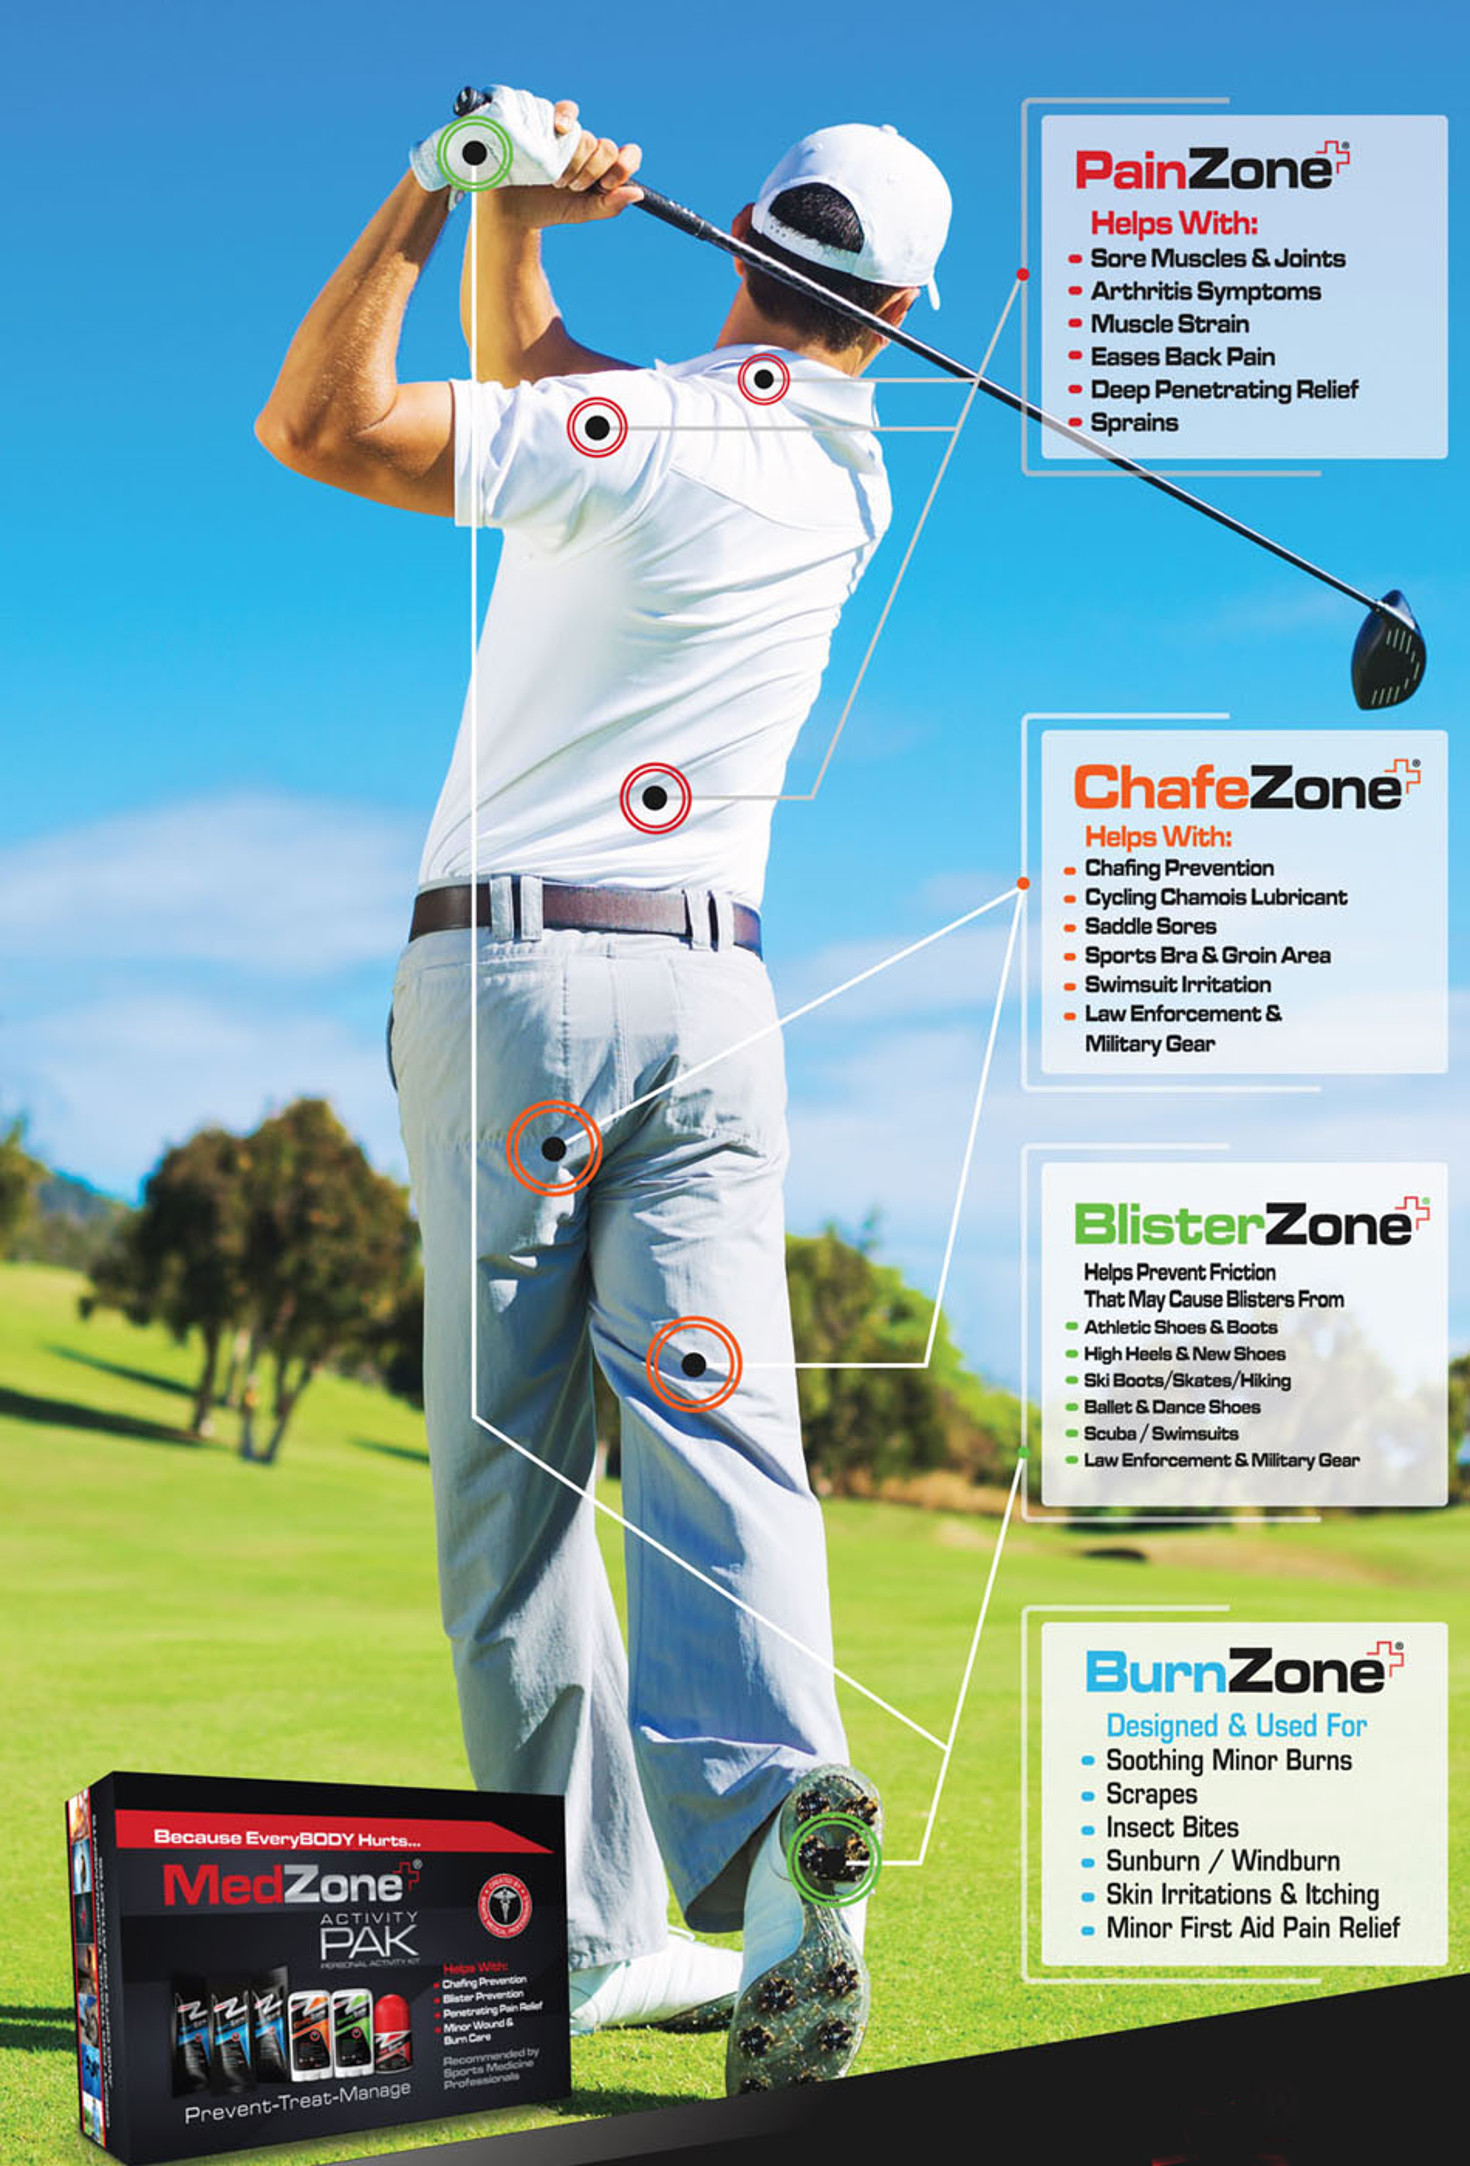 MedZone products have a number of applications for the average golfer.